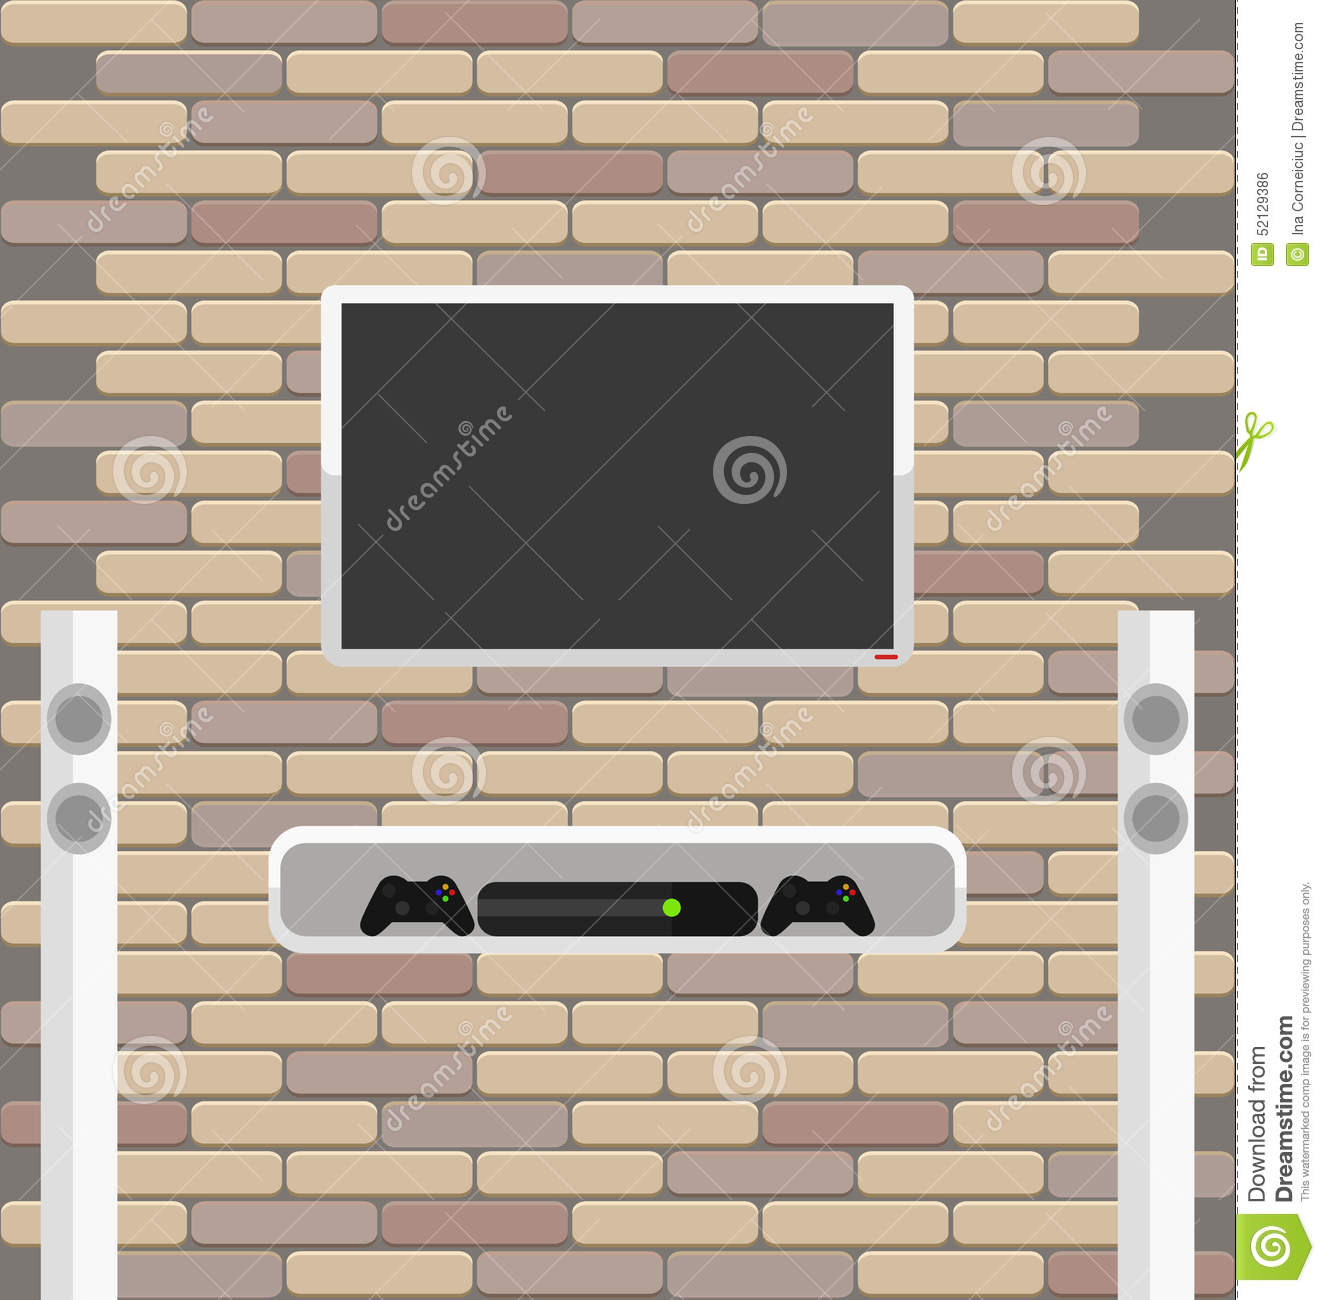 91 Console Living Room Games Valve Launching Steam Machine Game Consoles In 2014 Superb